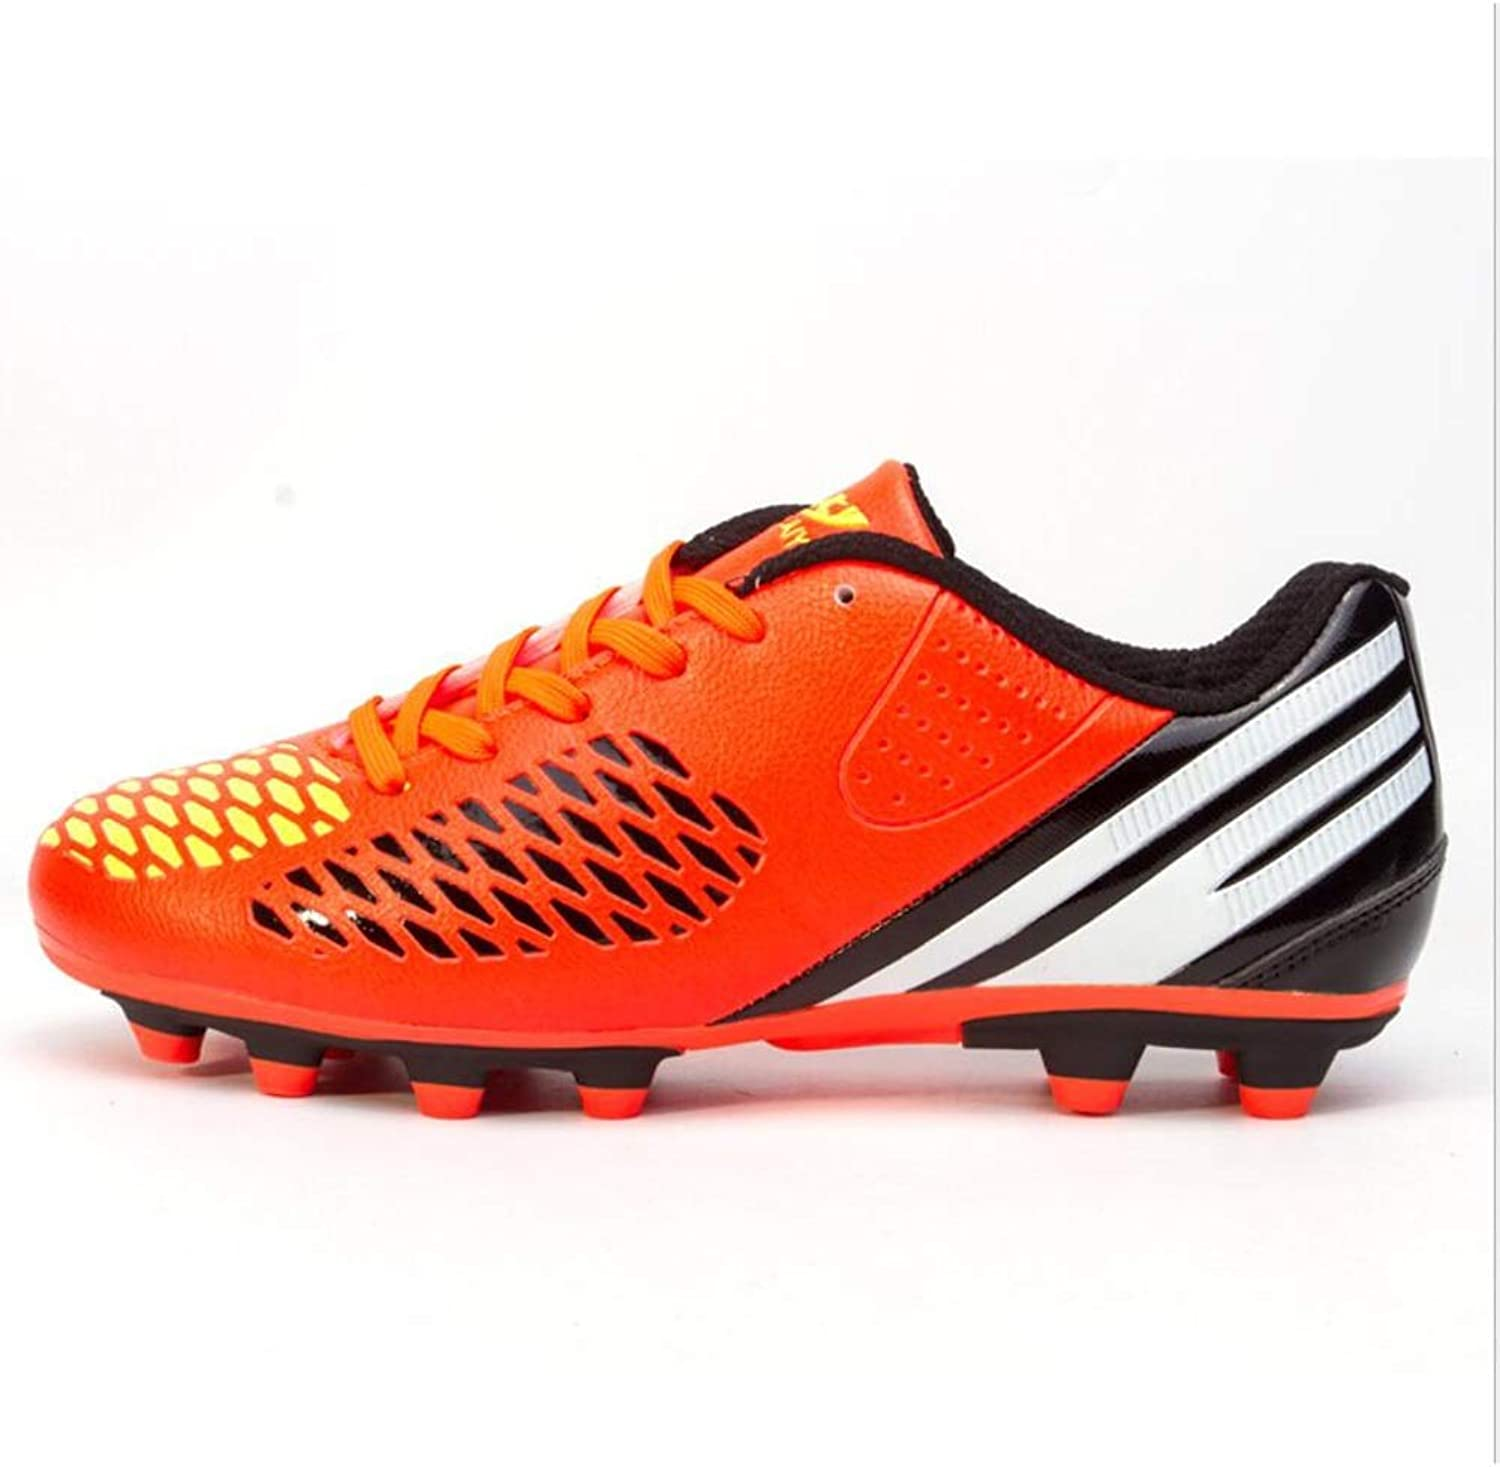 Men's Soccer shoes Soccer Cleats Comfort Football Boots Football Soccer Anti-Slip, Casual Low-Top Women's Sneakers,Non-Slip,Short Spike Training shoes,Grassland